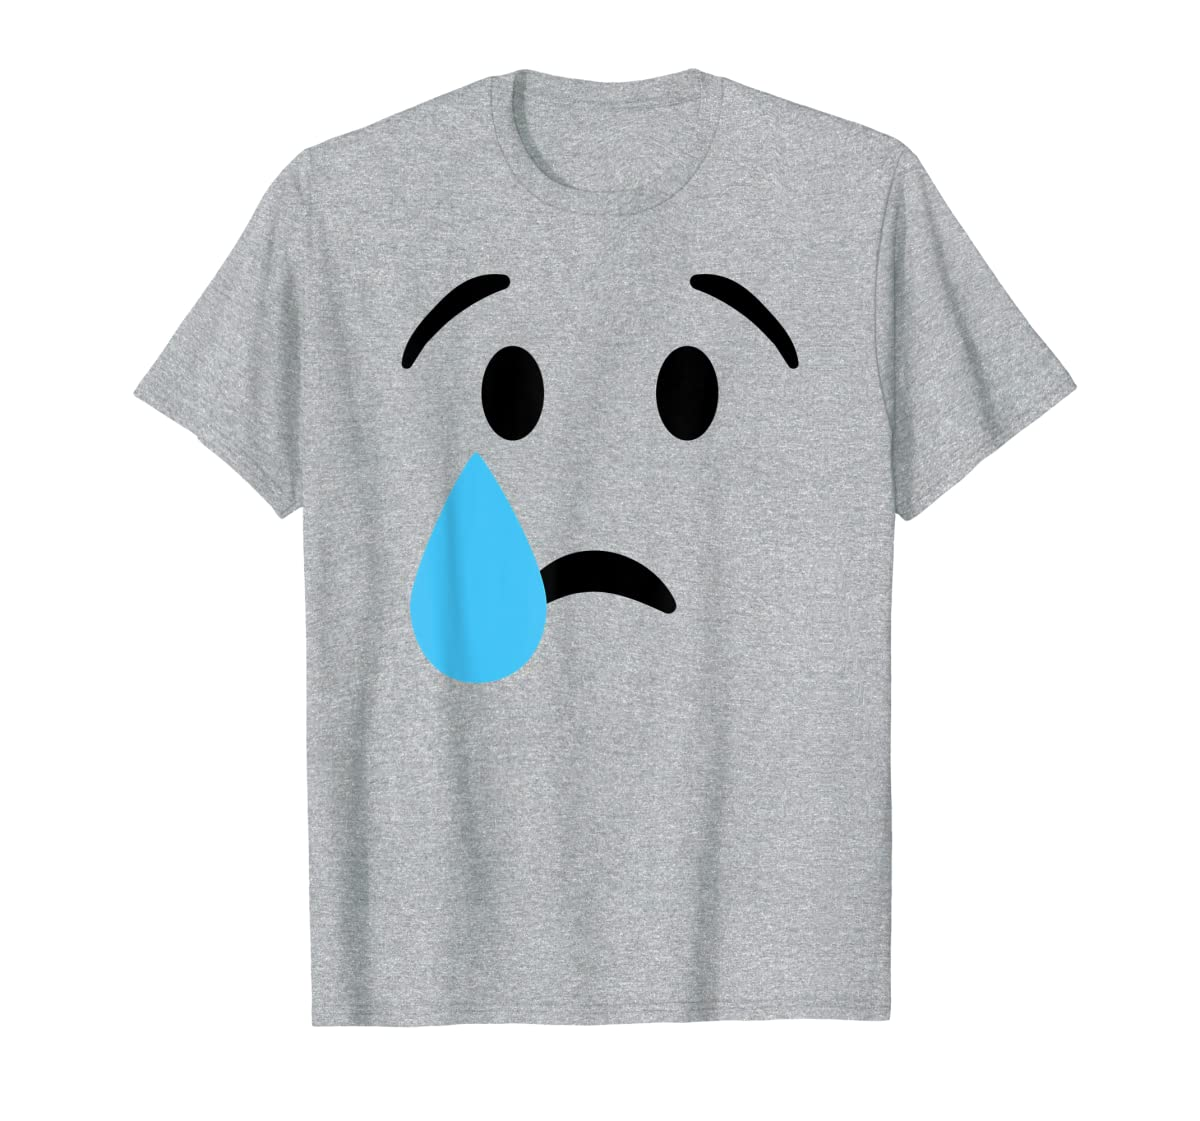 Sad Crying Tear Eyes Face Emojis Emoticon Halloween Costume T-Shirt-Men's T-Shirt-Sport Grey